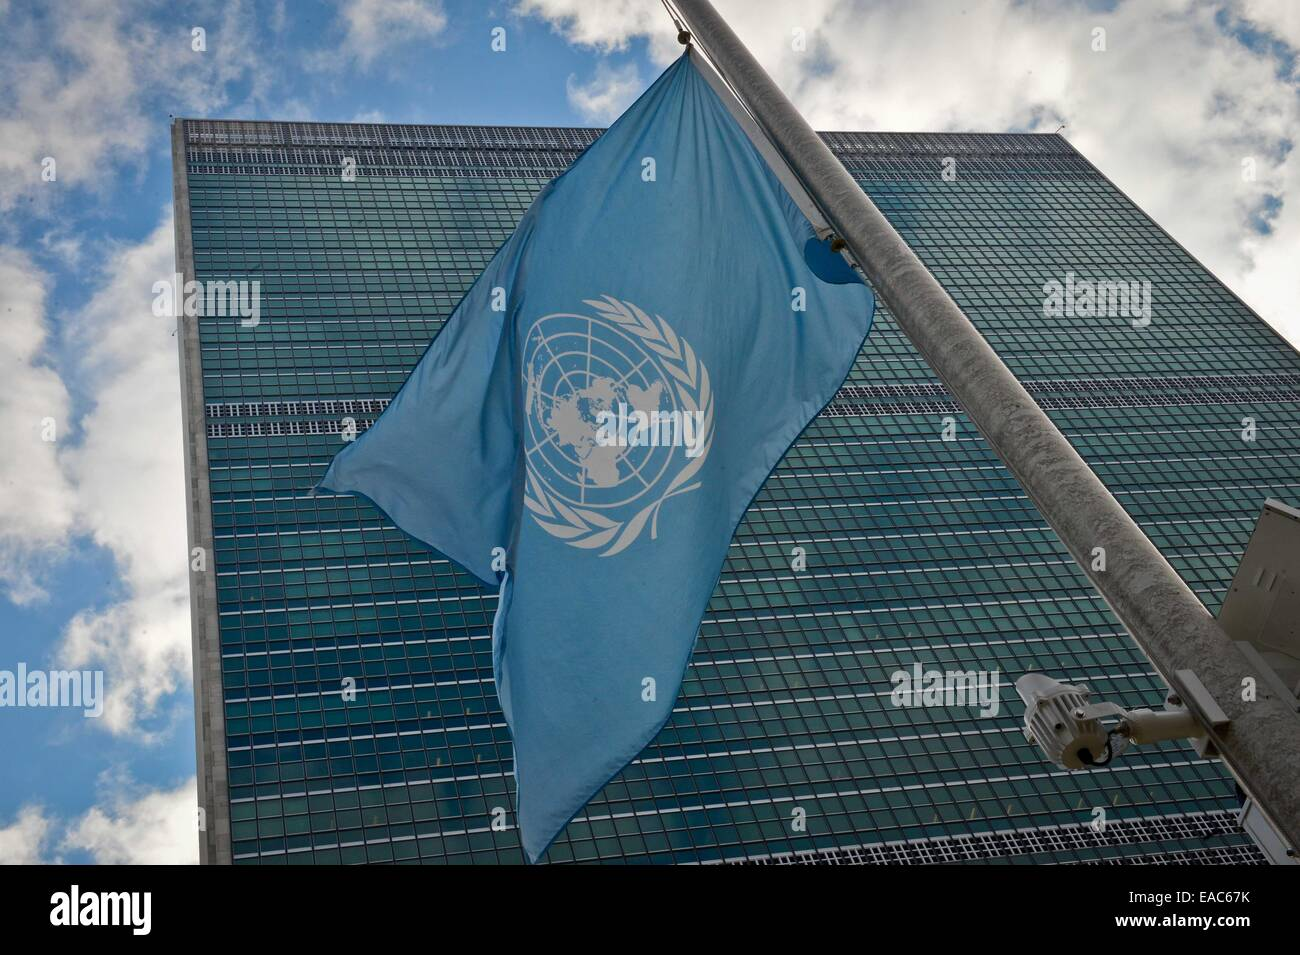 New York, USA. 11th Nov, 2014. The UN flag flies at half-mast at the UN headquarters in New York on Nov. 11, 2014, - Stock Image